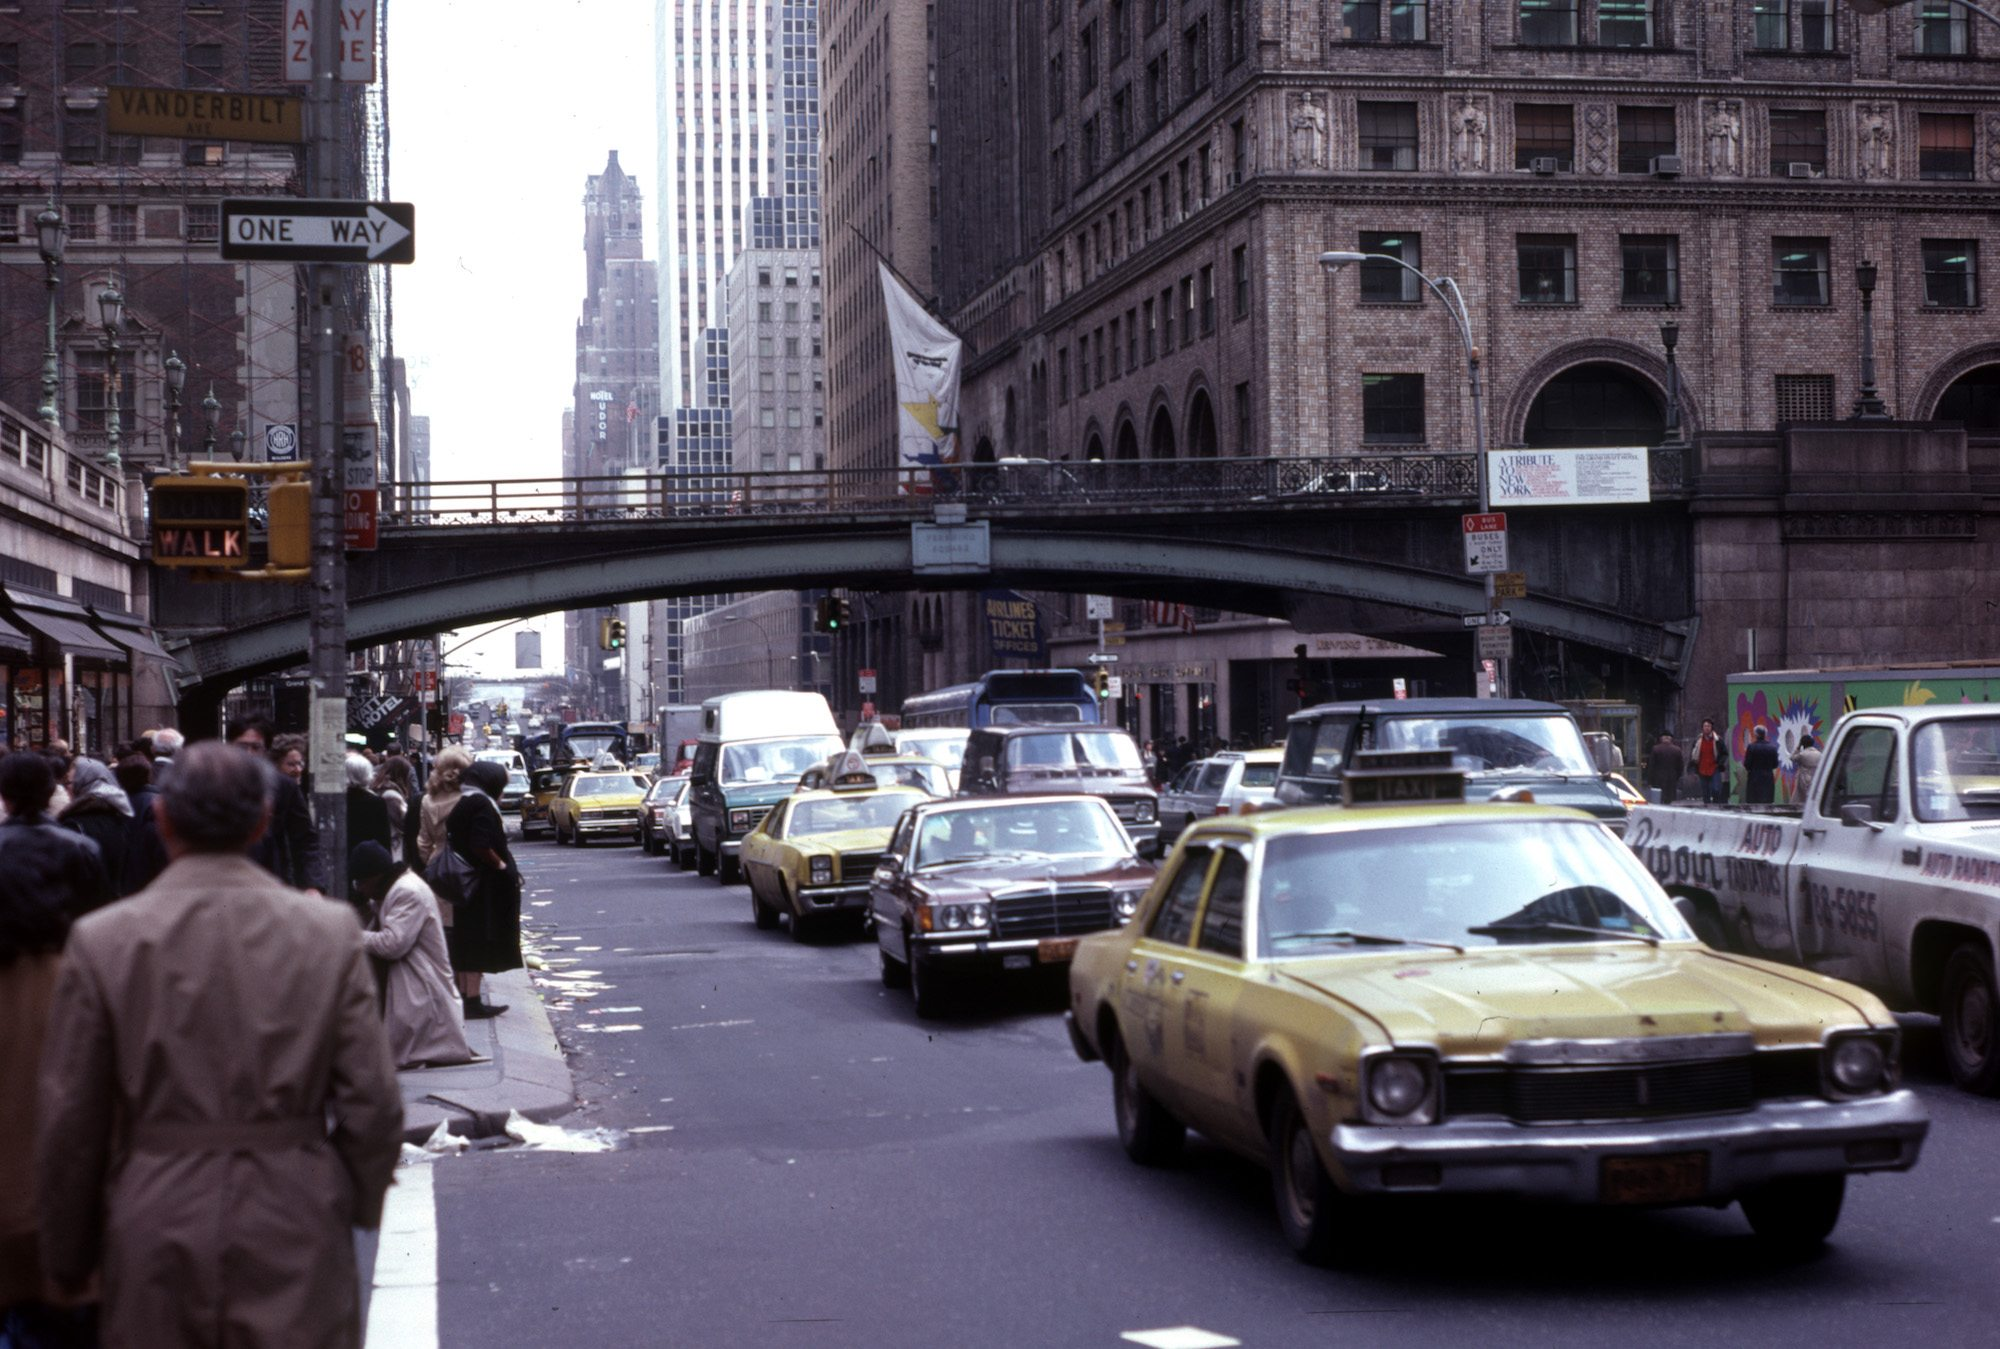 NYC 1979, vintage New York, old NYC photos, NYC 1970s